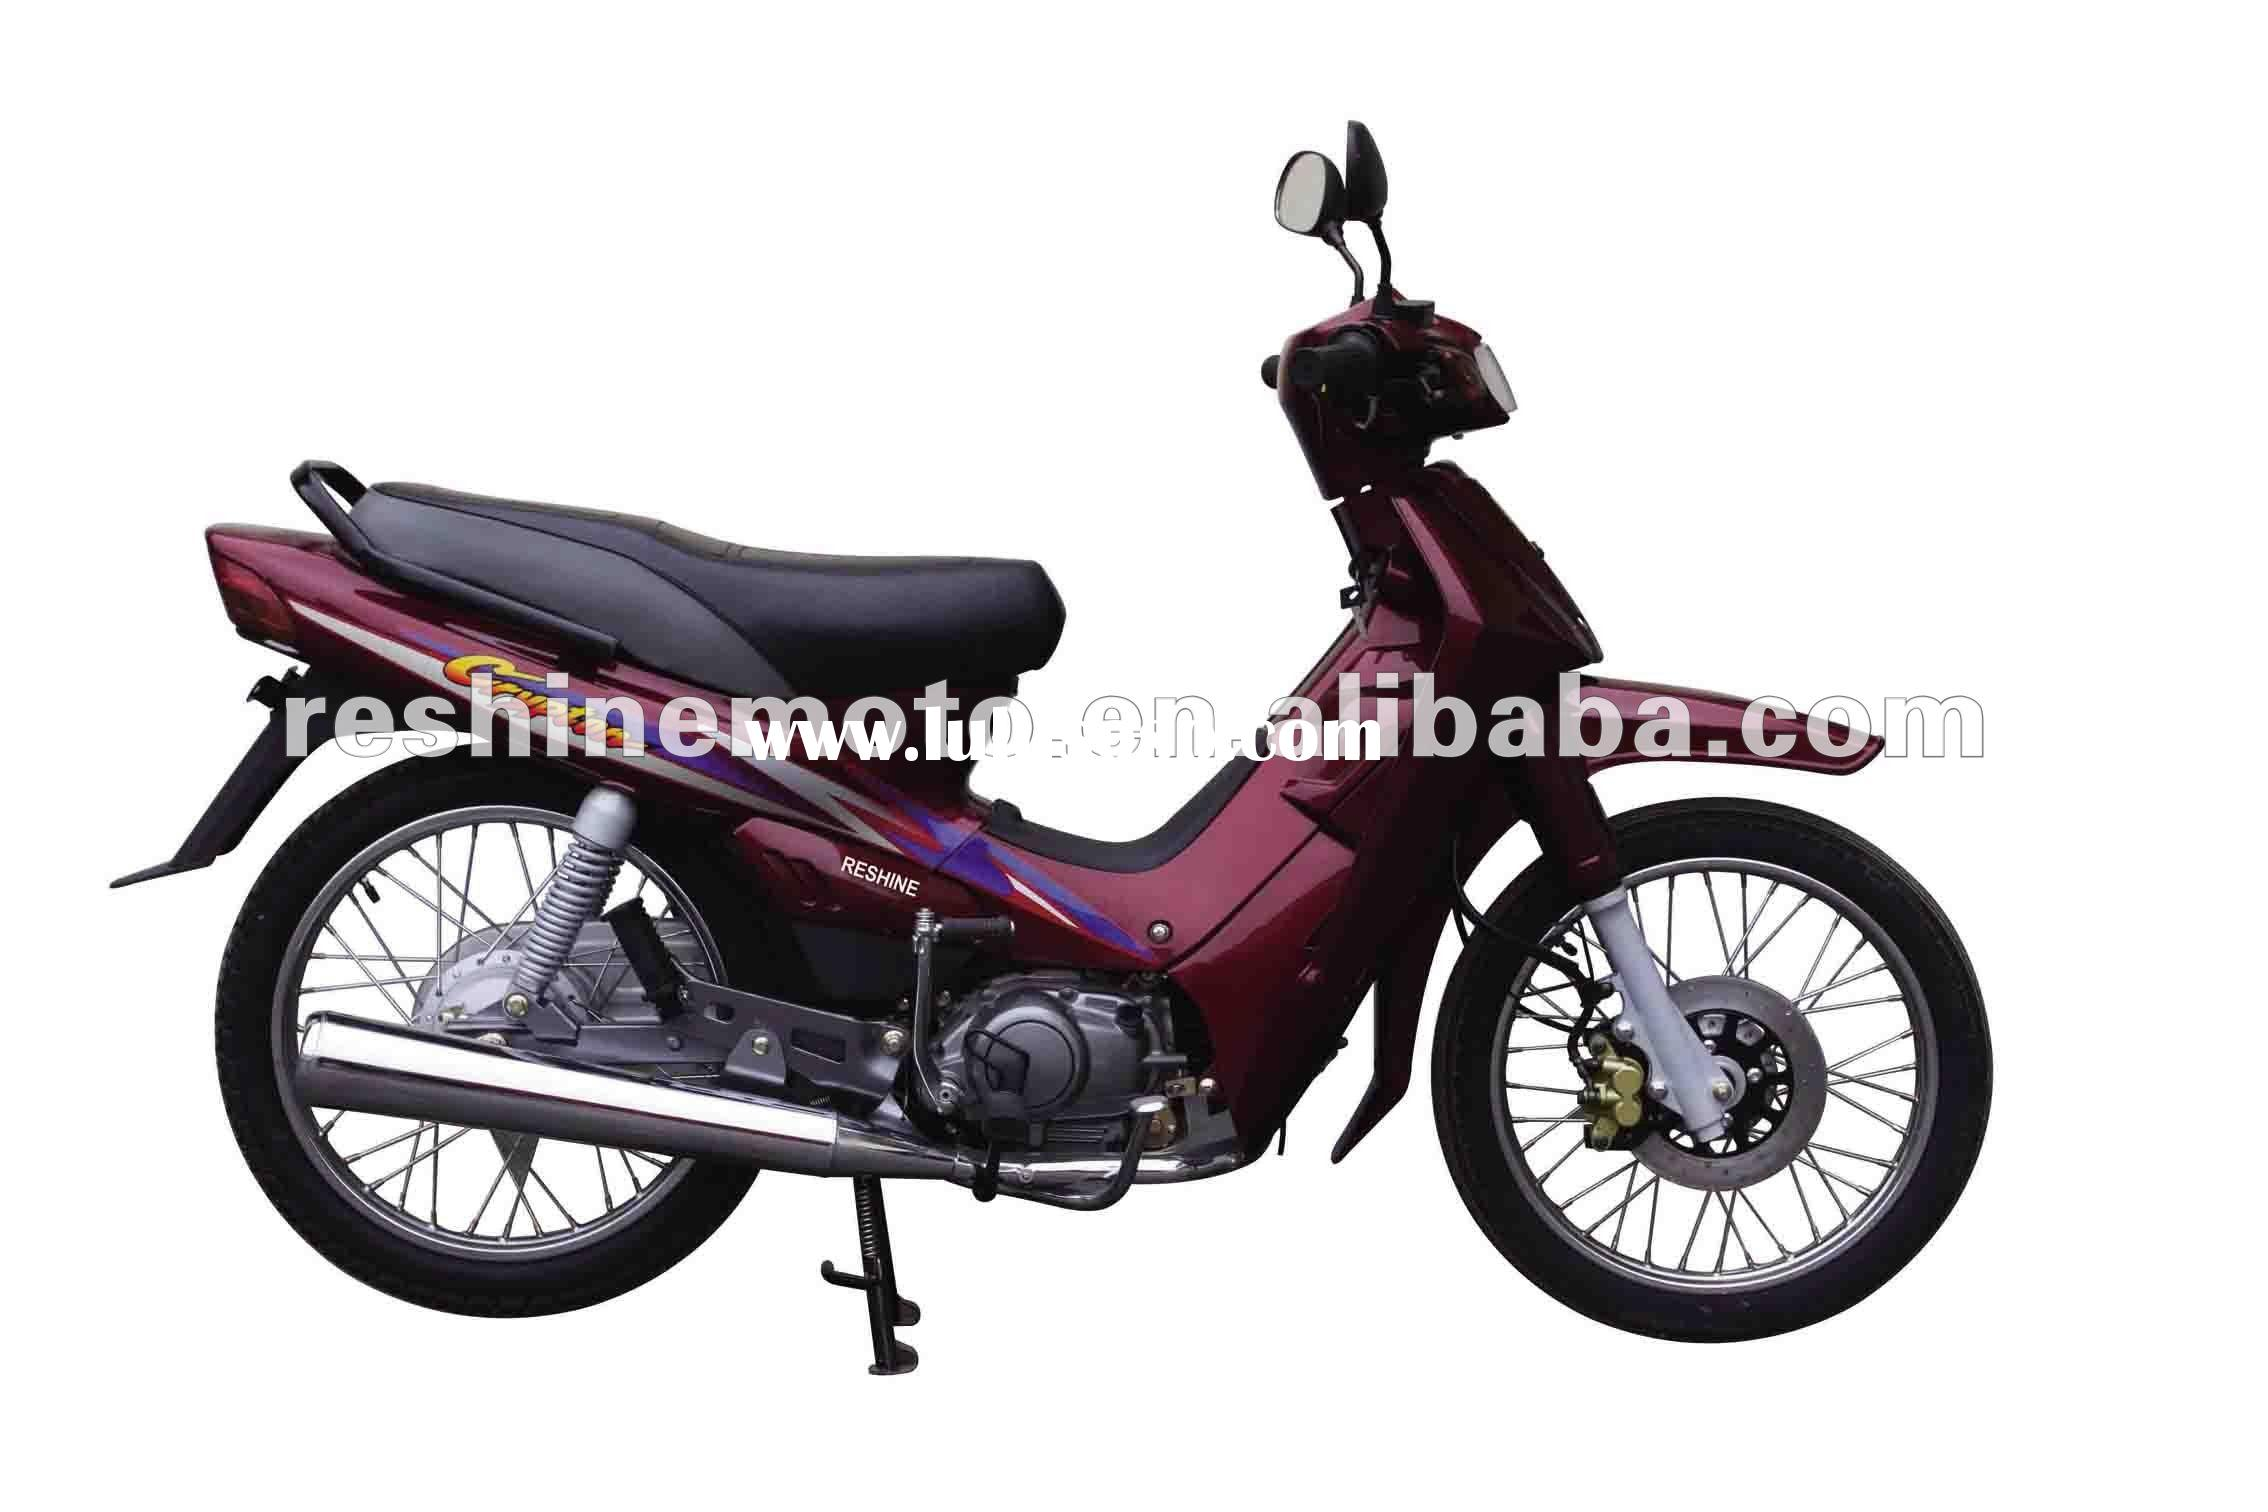 110cc new crypton motor bikes, best-selling model street bike